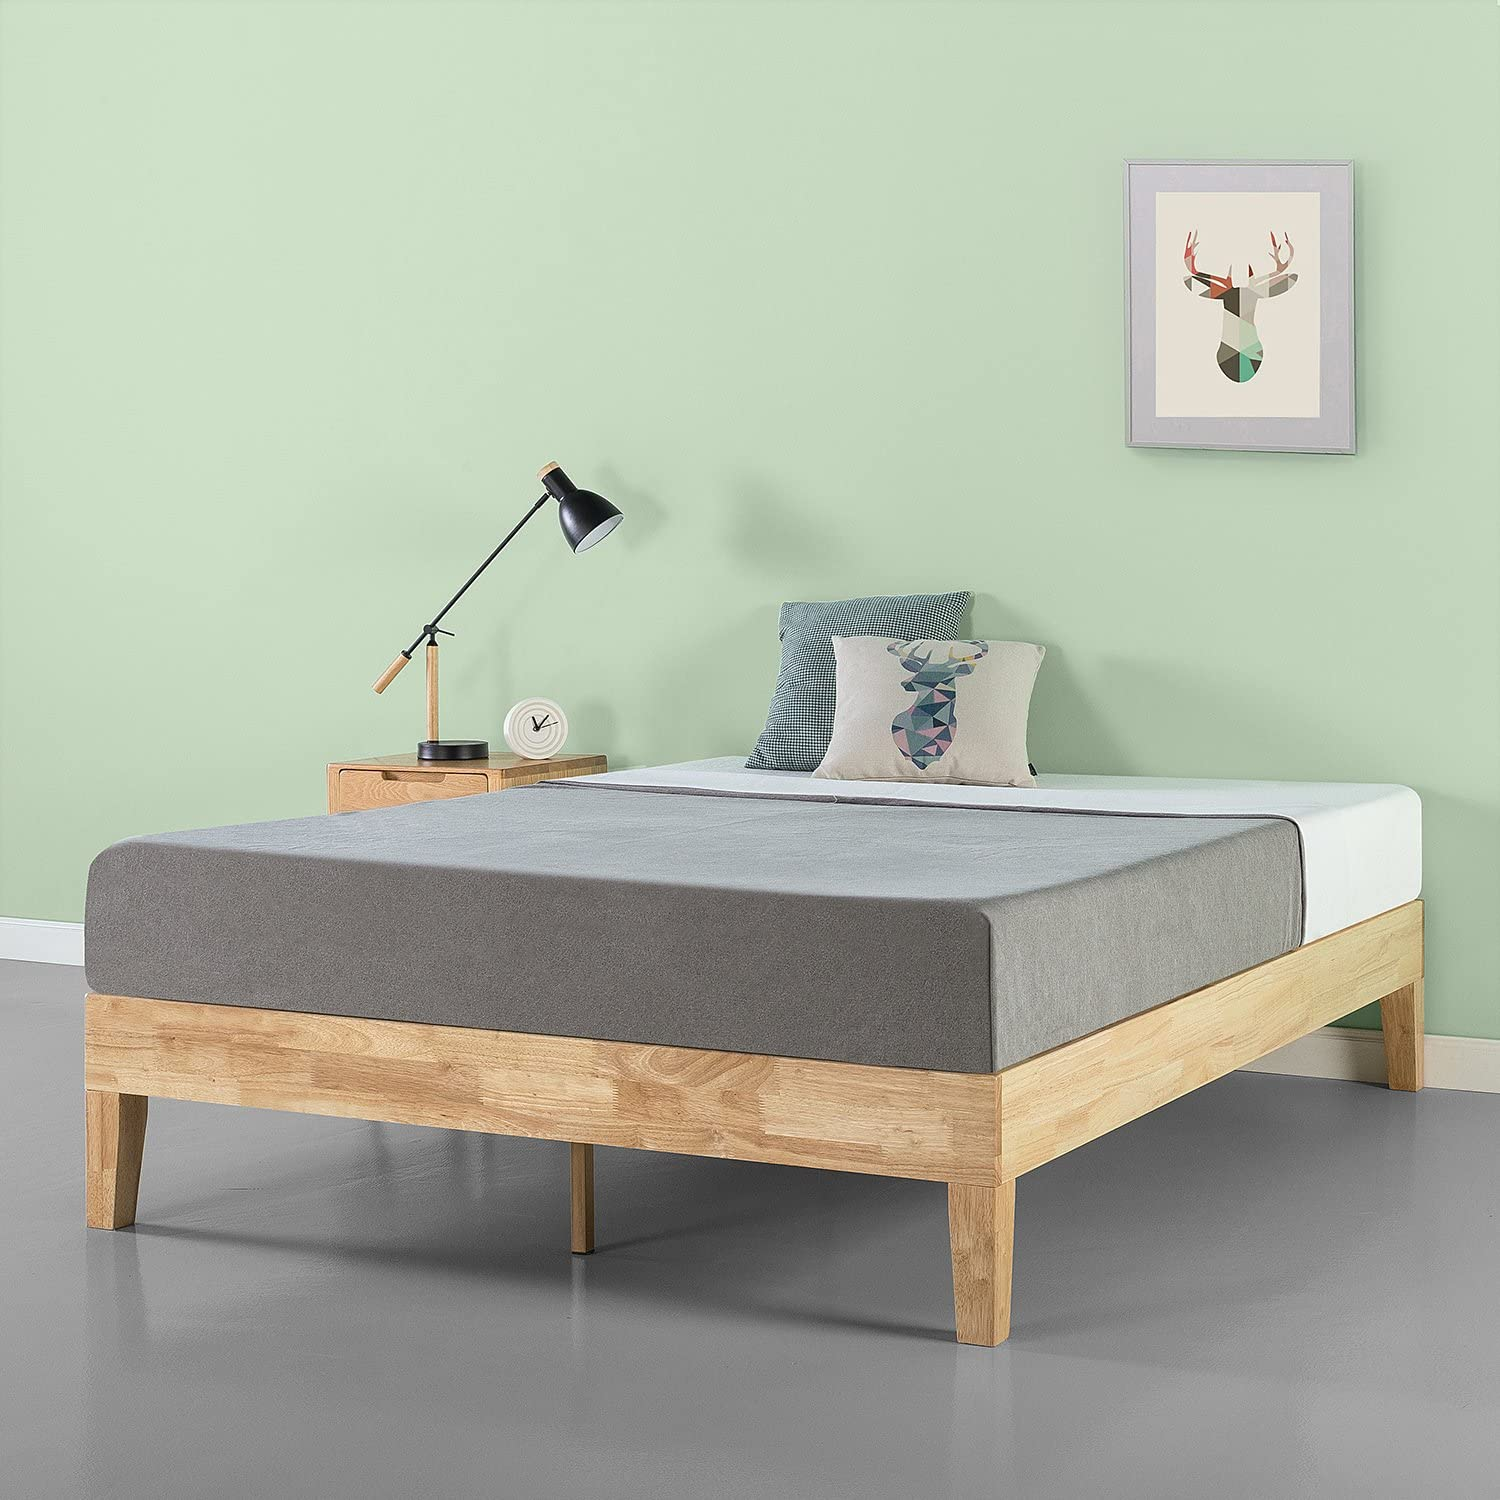 Zinus Moiz 14 Inch Deluxe Solid Wood Platform Bed Frame with Wood Slat Support No Box Spring Needed, Twin